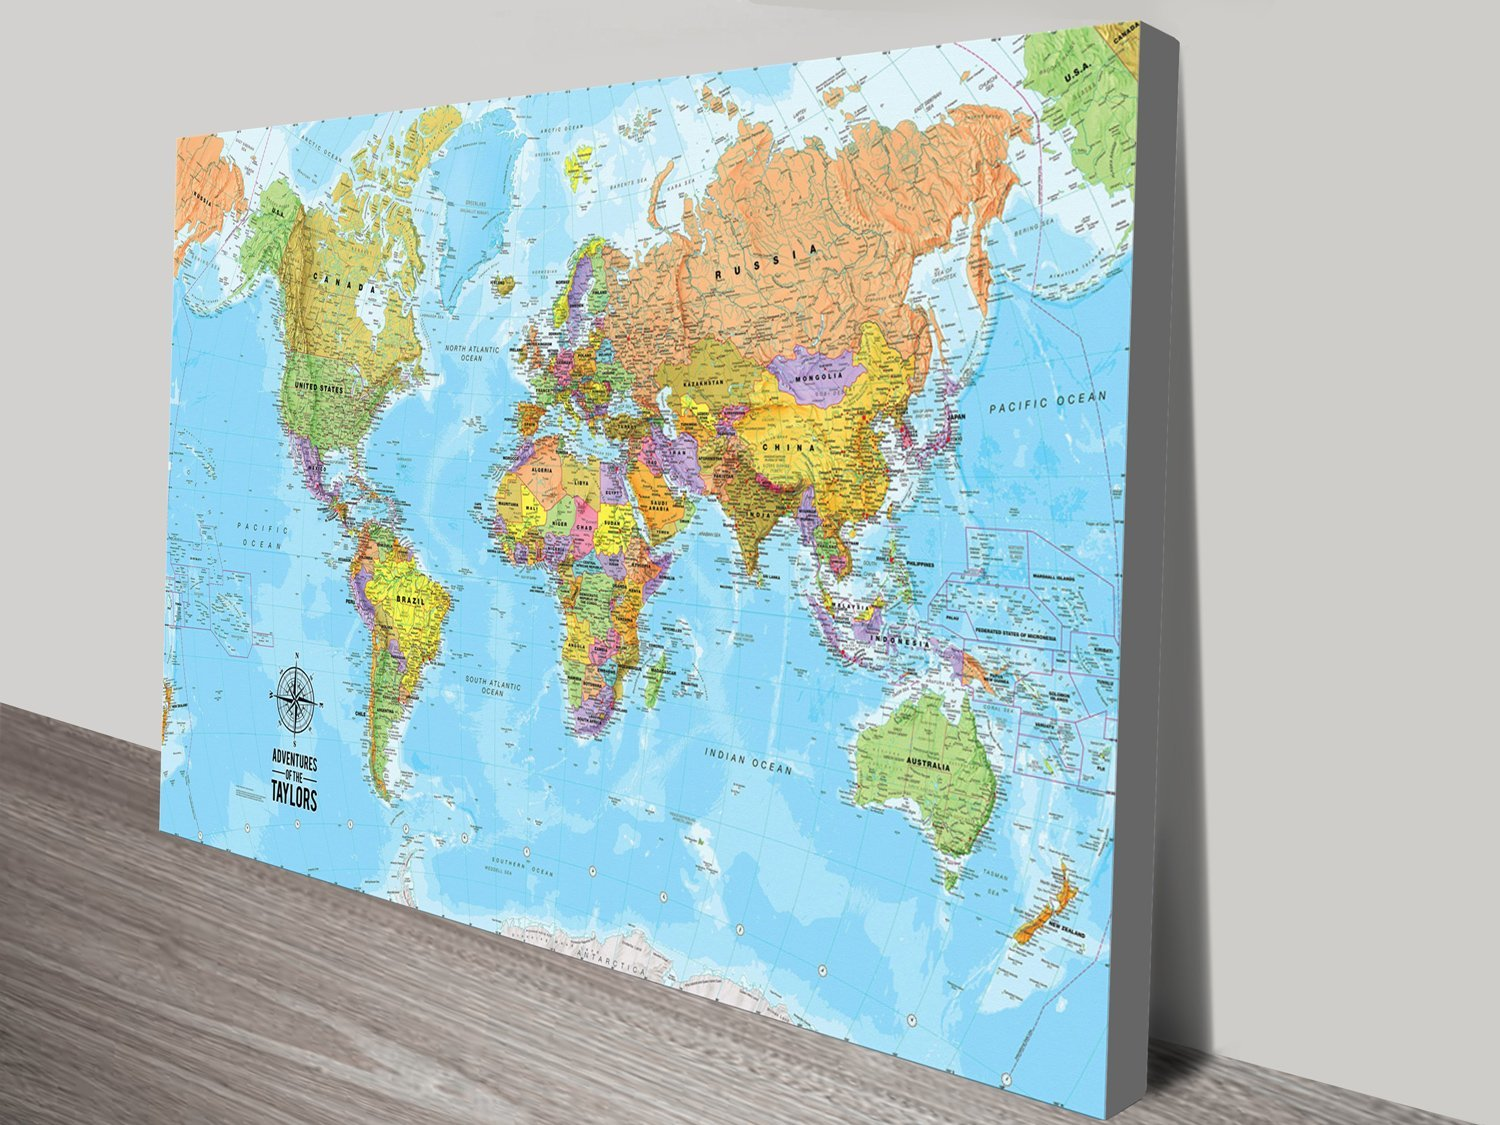 Bespoke world travel push pin world map canvas artwork sydney bespoke push pin world travel map gumiabroncs Gallery